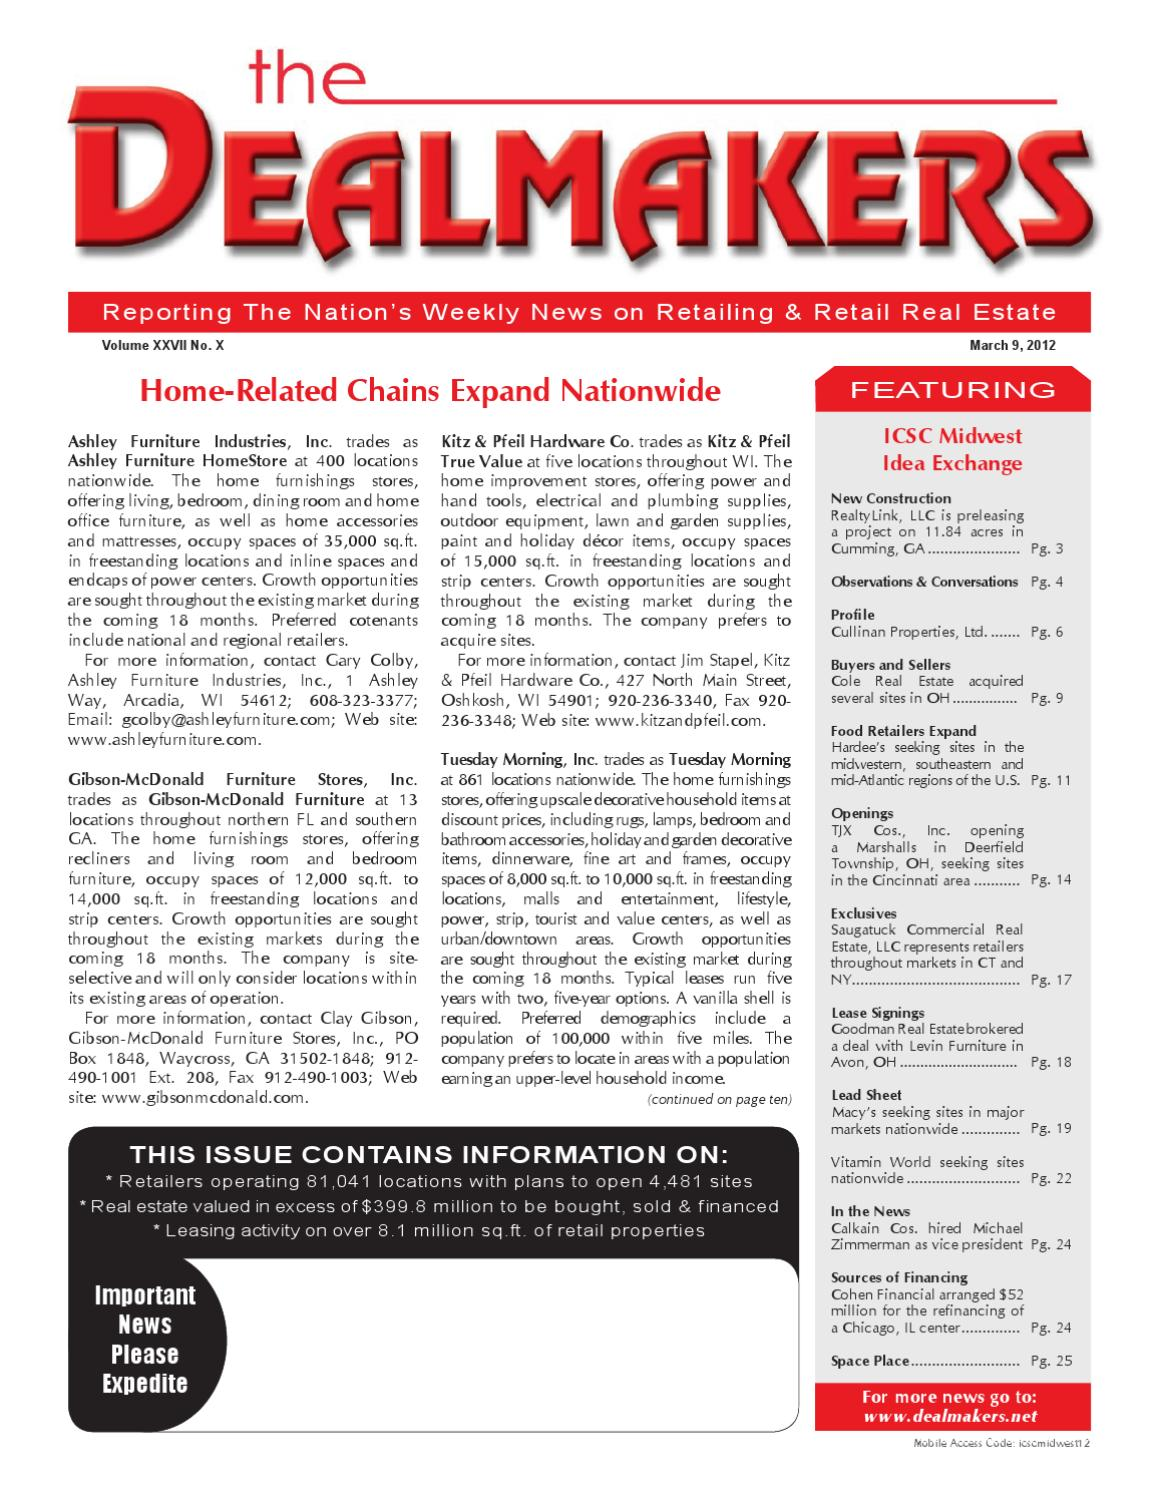 Dealmakers magazine march 9 2012 by the dealmakers for 1 furniture way arcadia wi